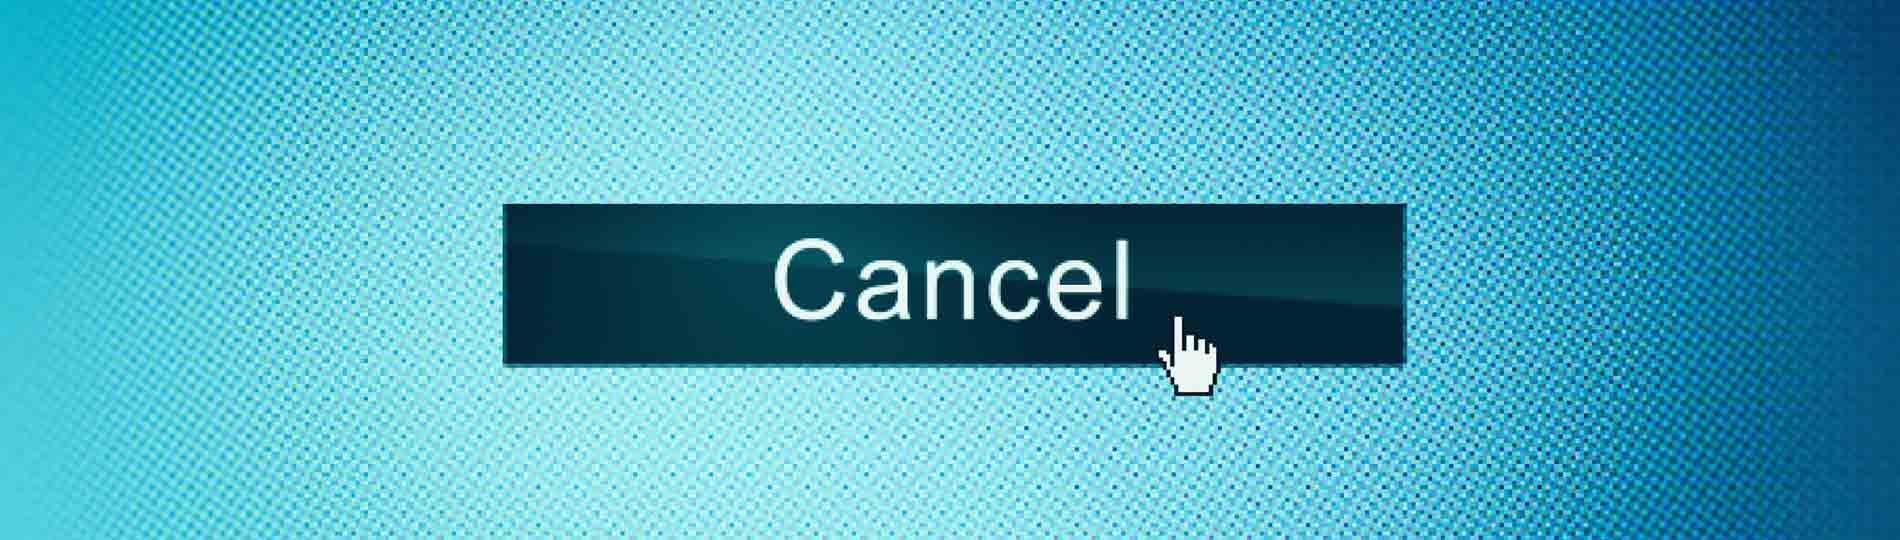 10 theses about cancel culture